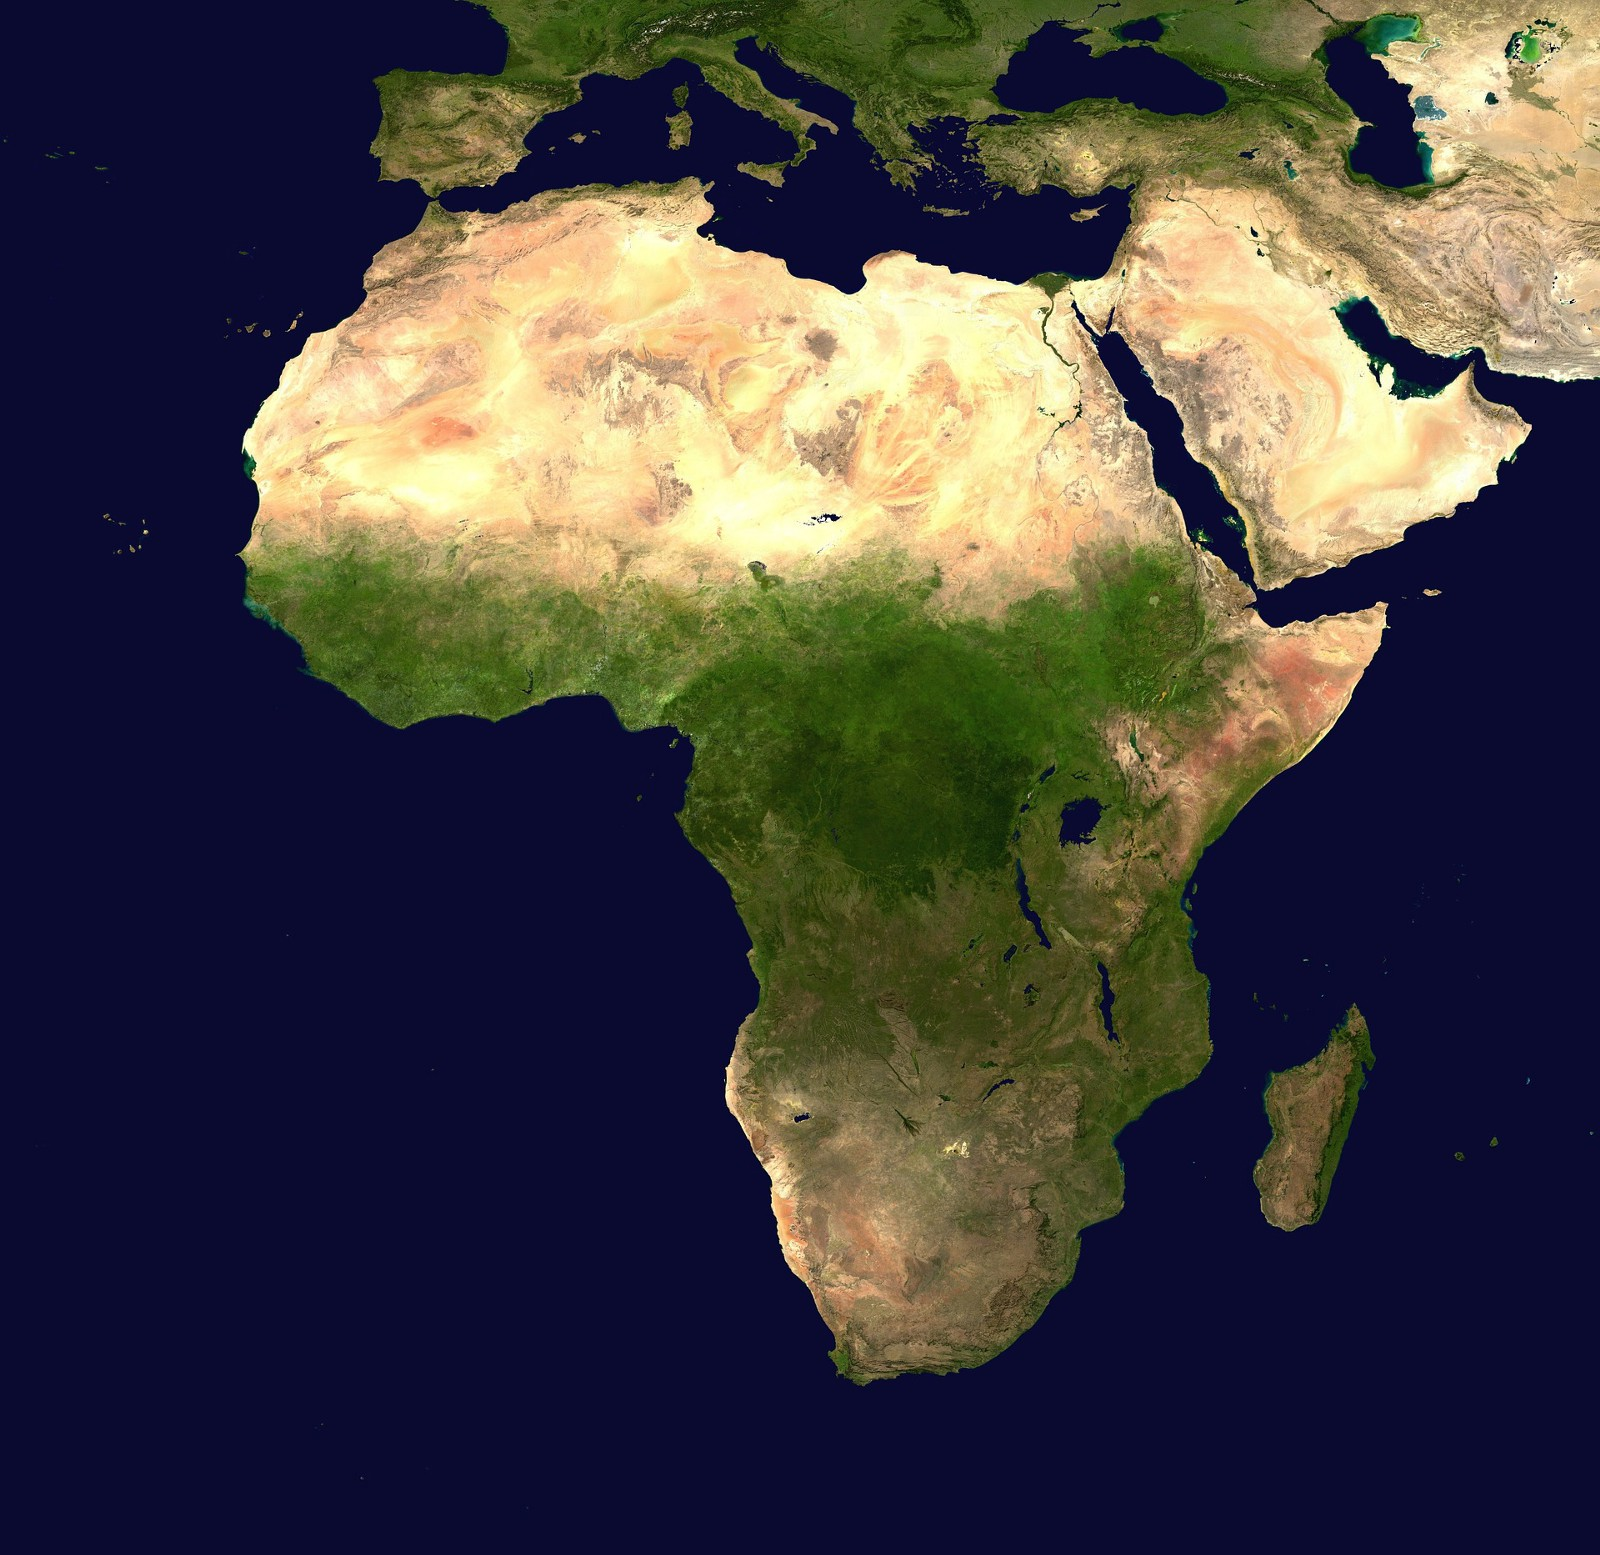 Africa is going green on technology adoption